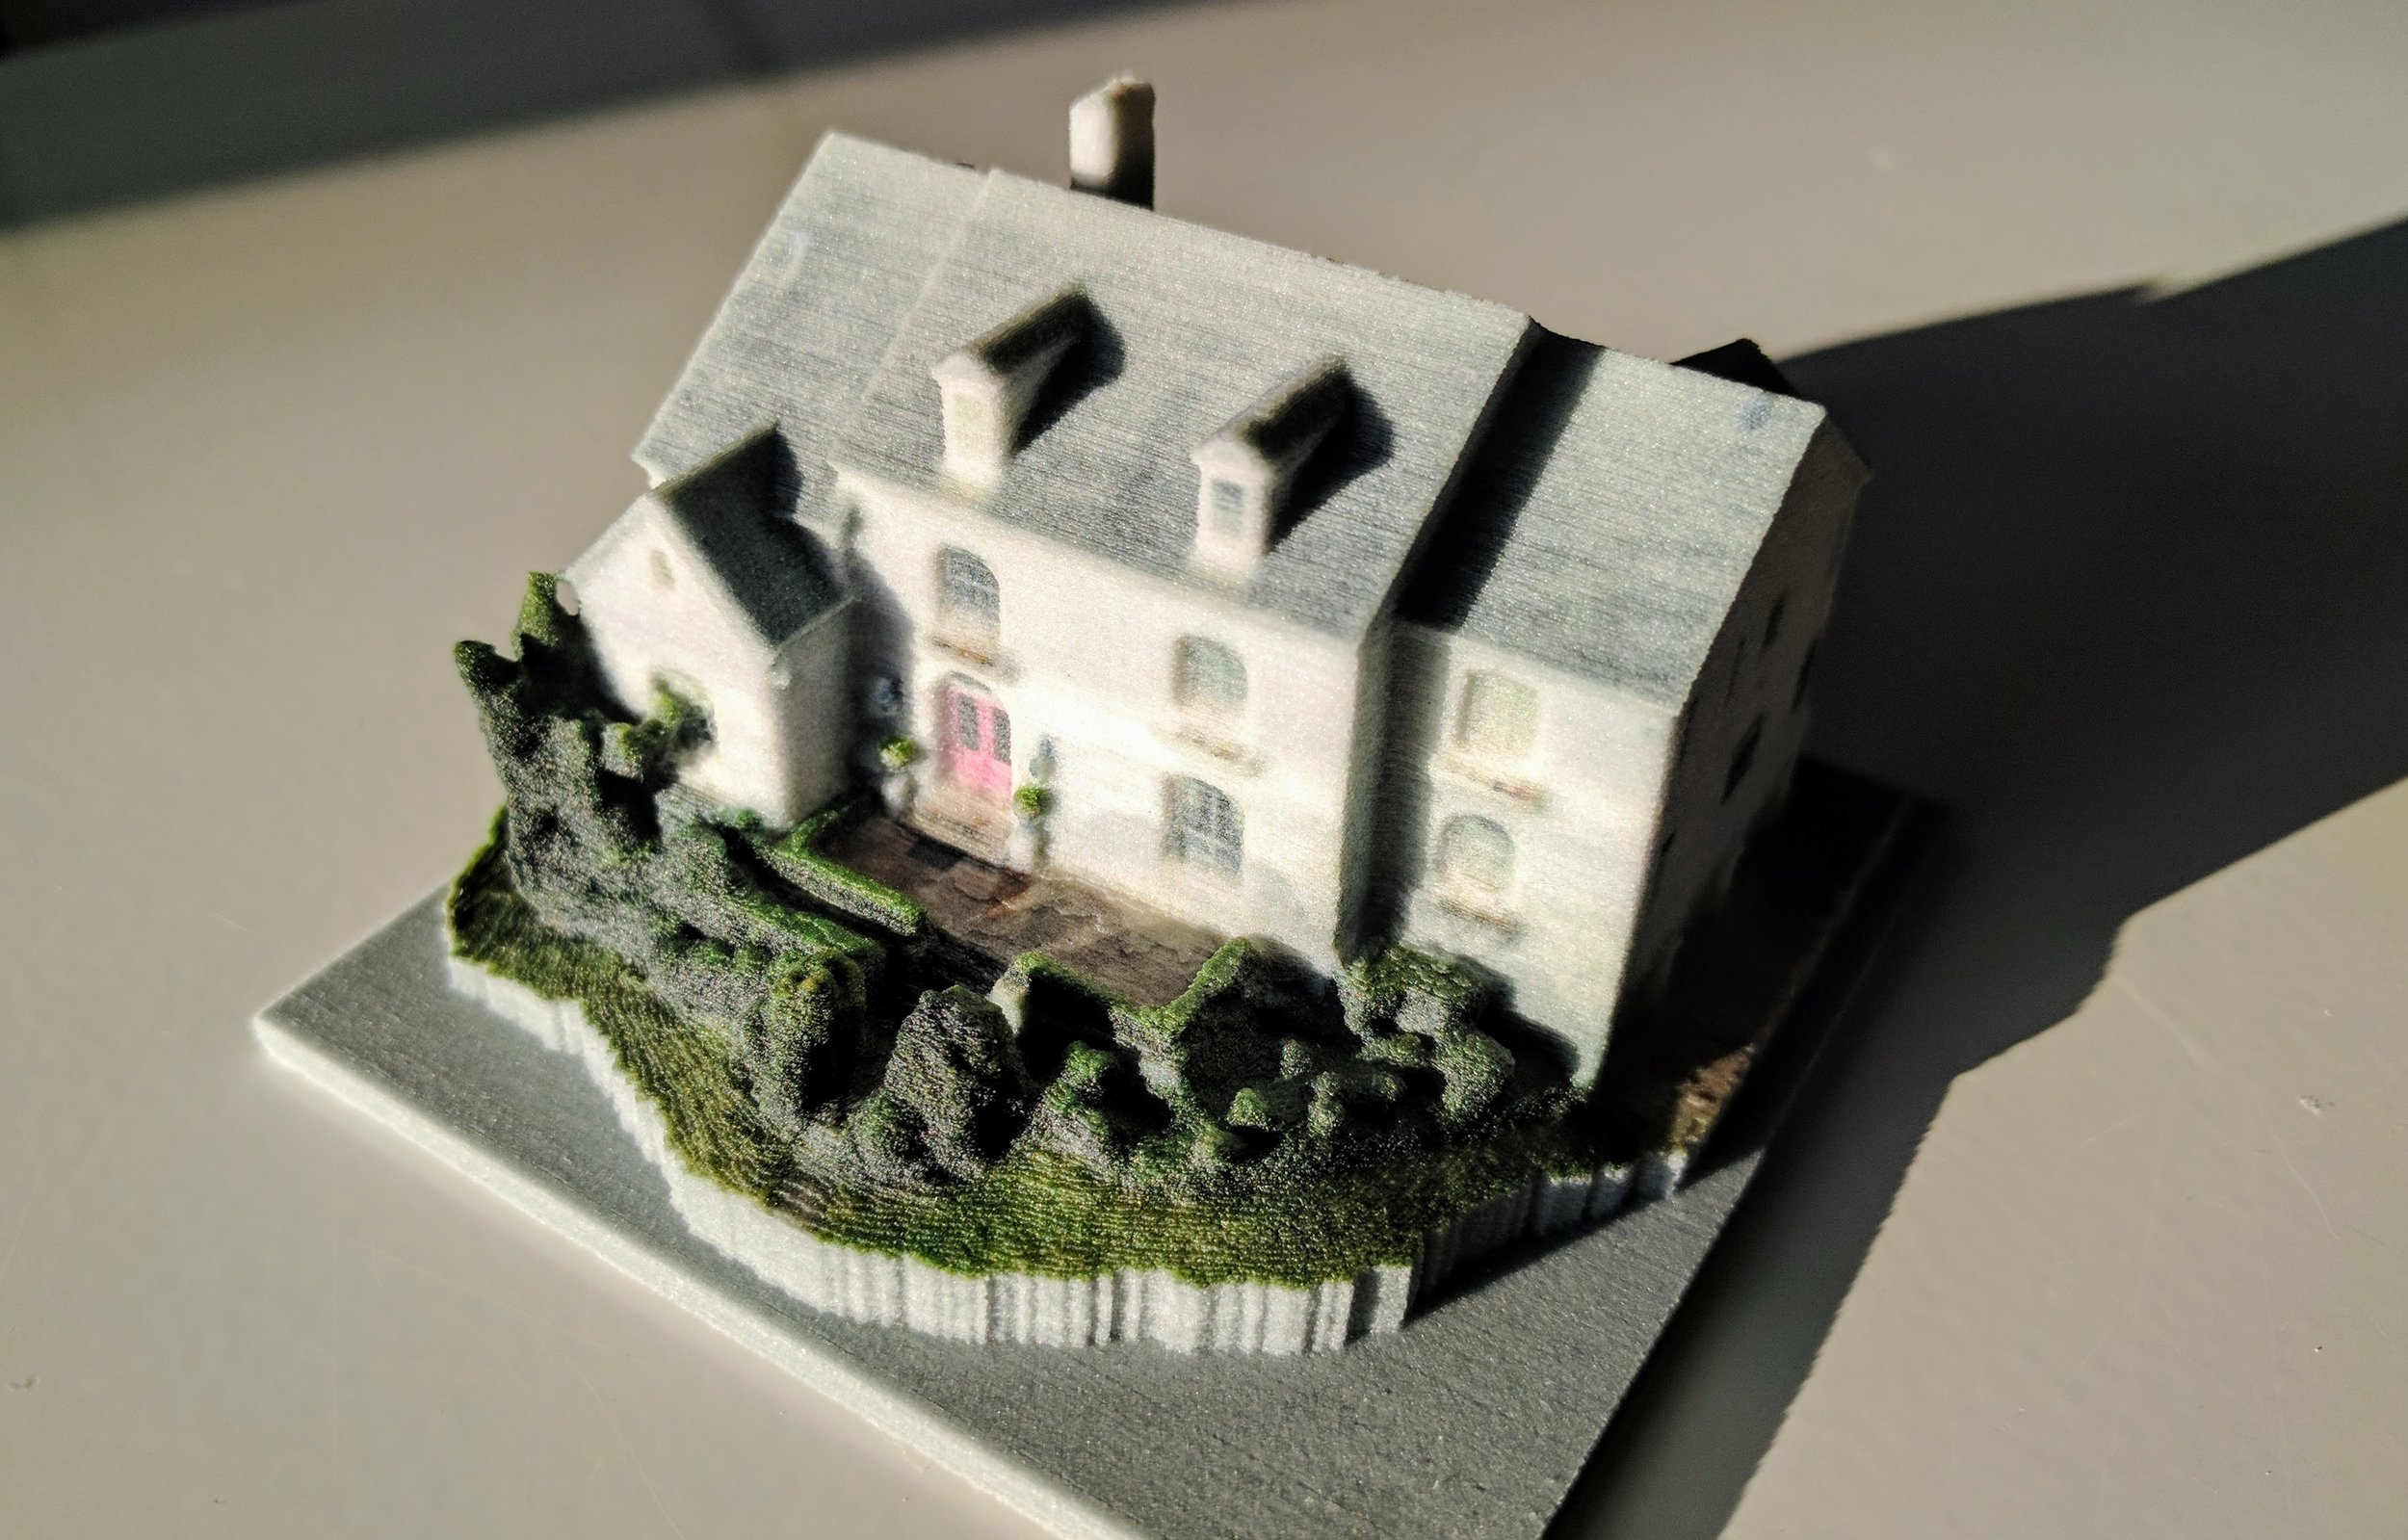 The digital 3D model of the house, printed in 3D color (sandstone)